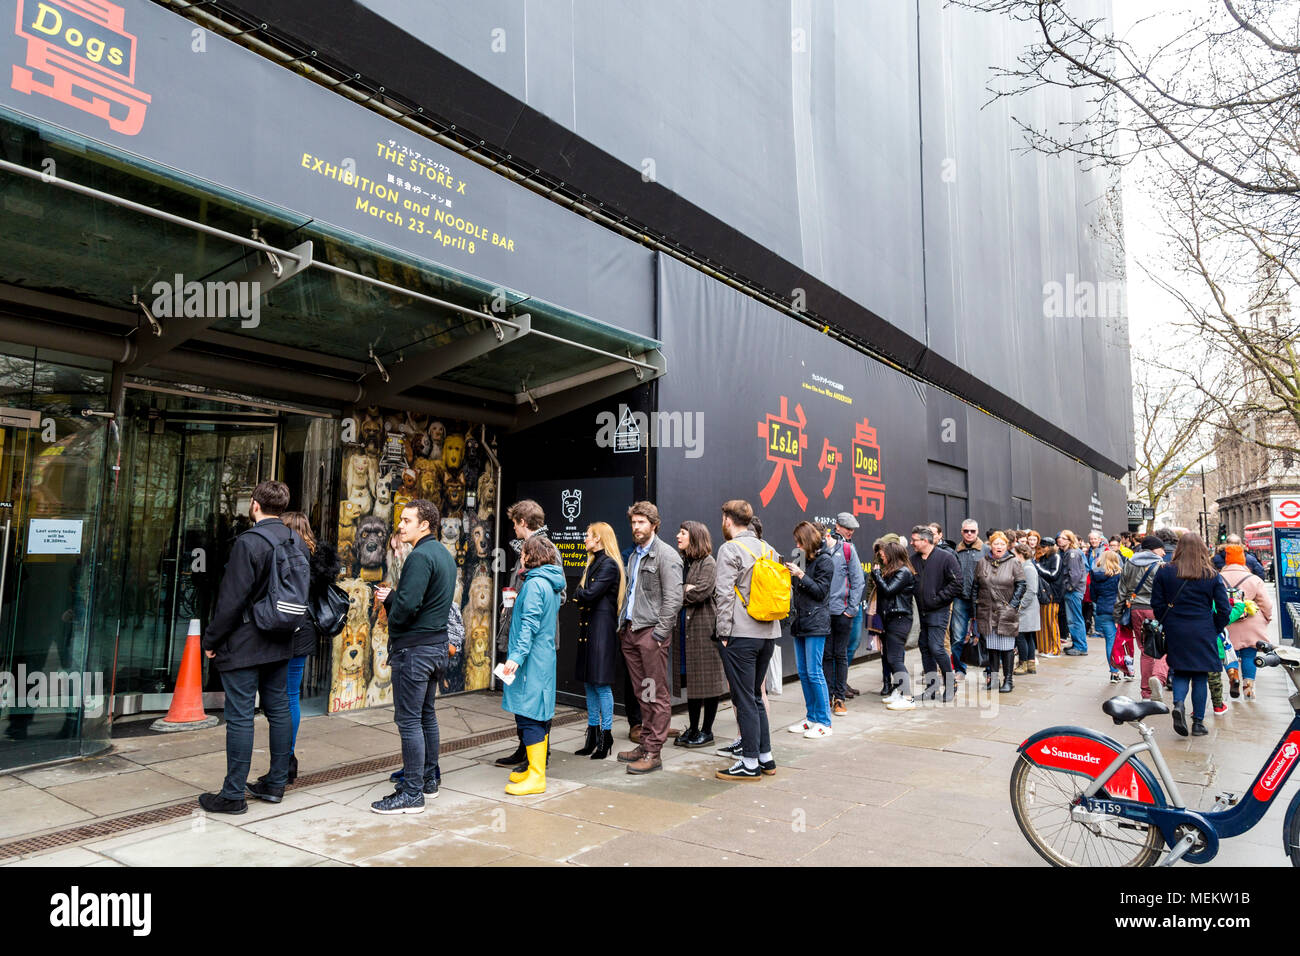 Long queue to the Wes Anderson 'Isle of Dogs' exhibition at the Strand, London, UK - Stock Image